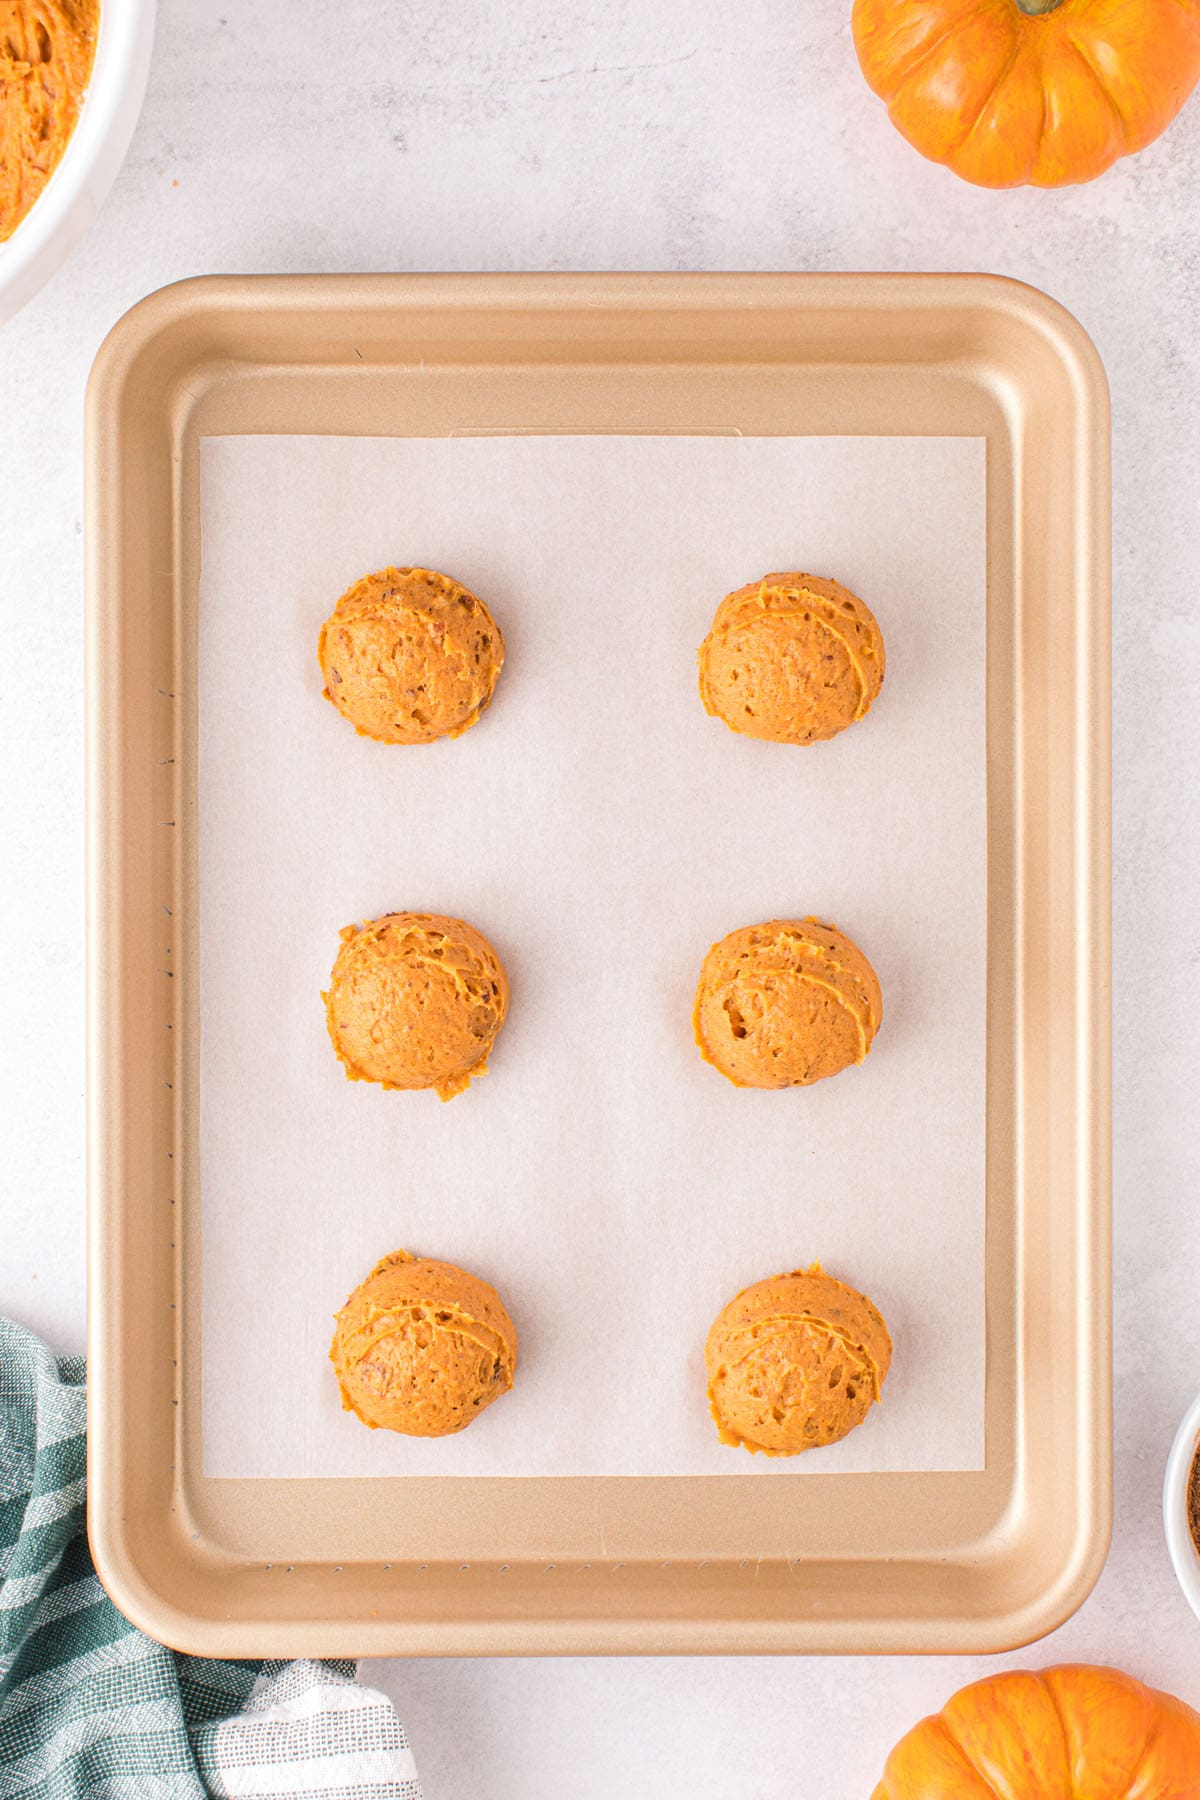 Drop scoops of cookie dough onto the parchment-lined sheet pan